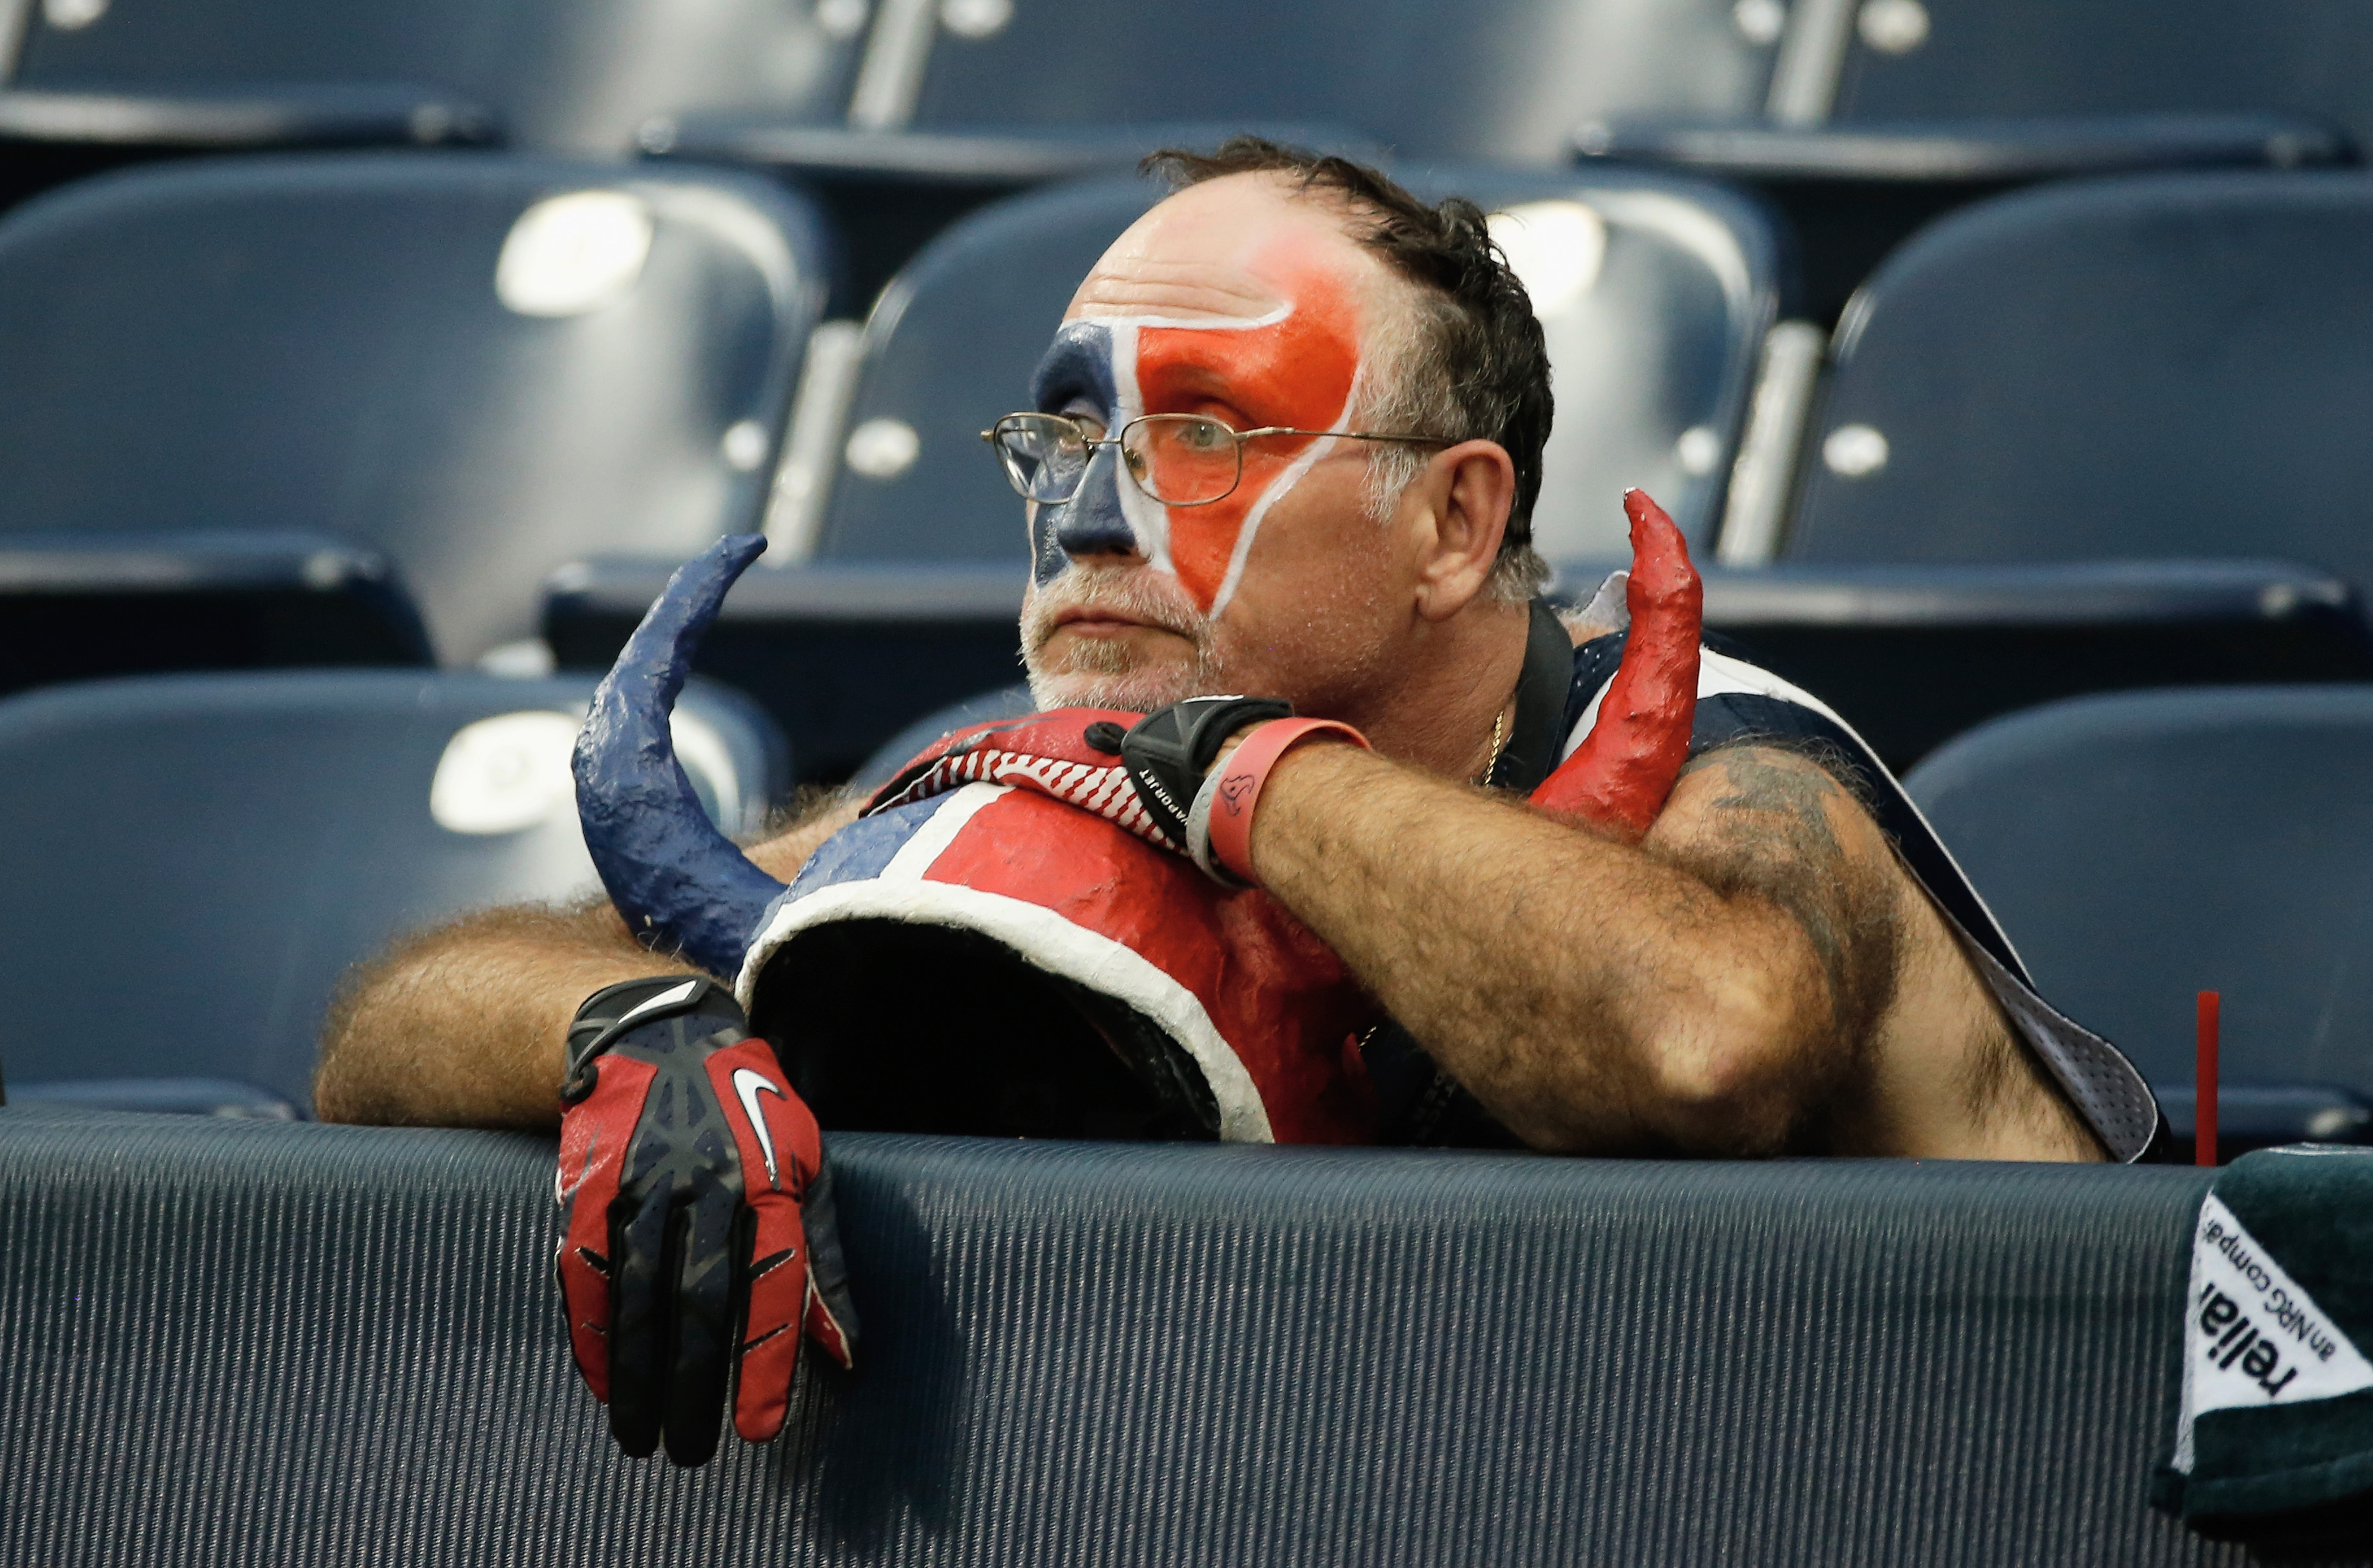 For better or worse, you know this dude will be at Reliant Stadium tomorrow.